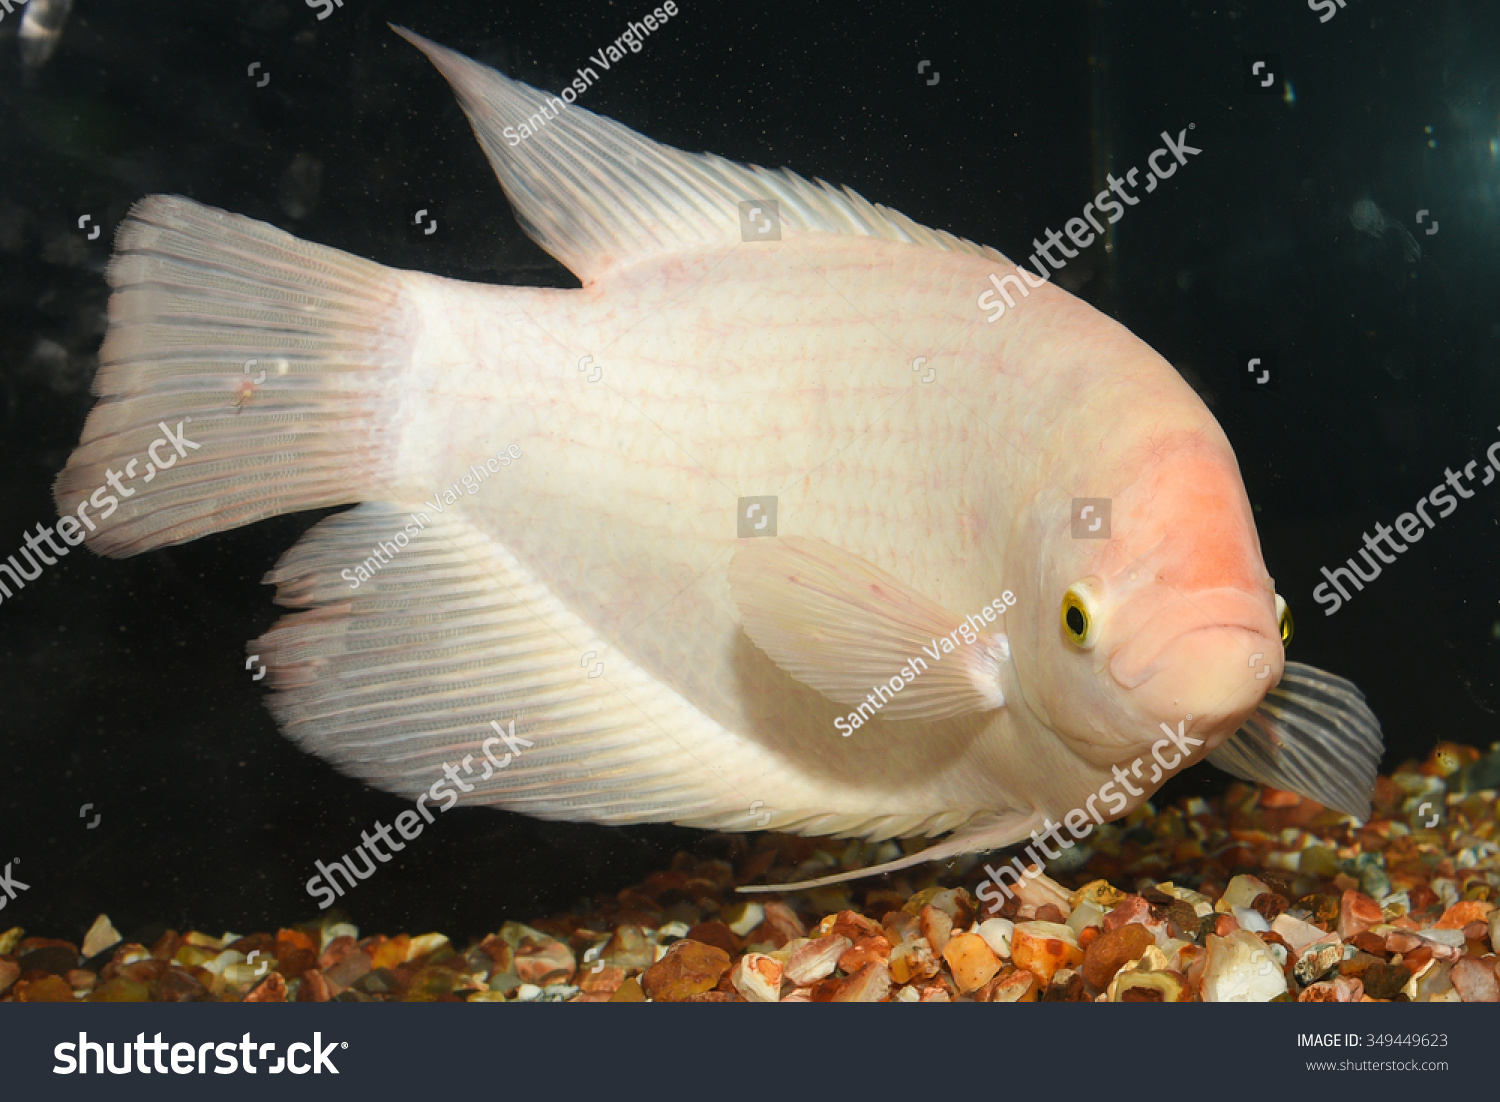 Freshwater fish kerala - Close Up Of White Albino Giant Gourami Fish In A Fresh Water Aquarium With Dark